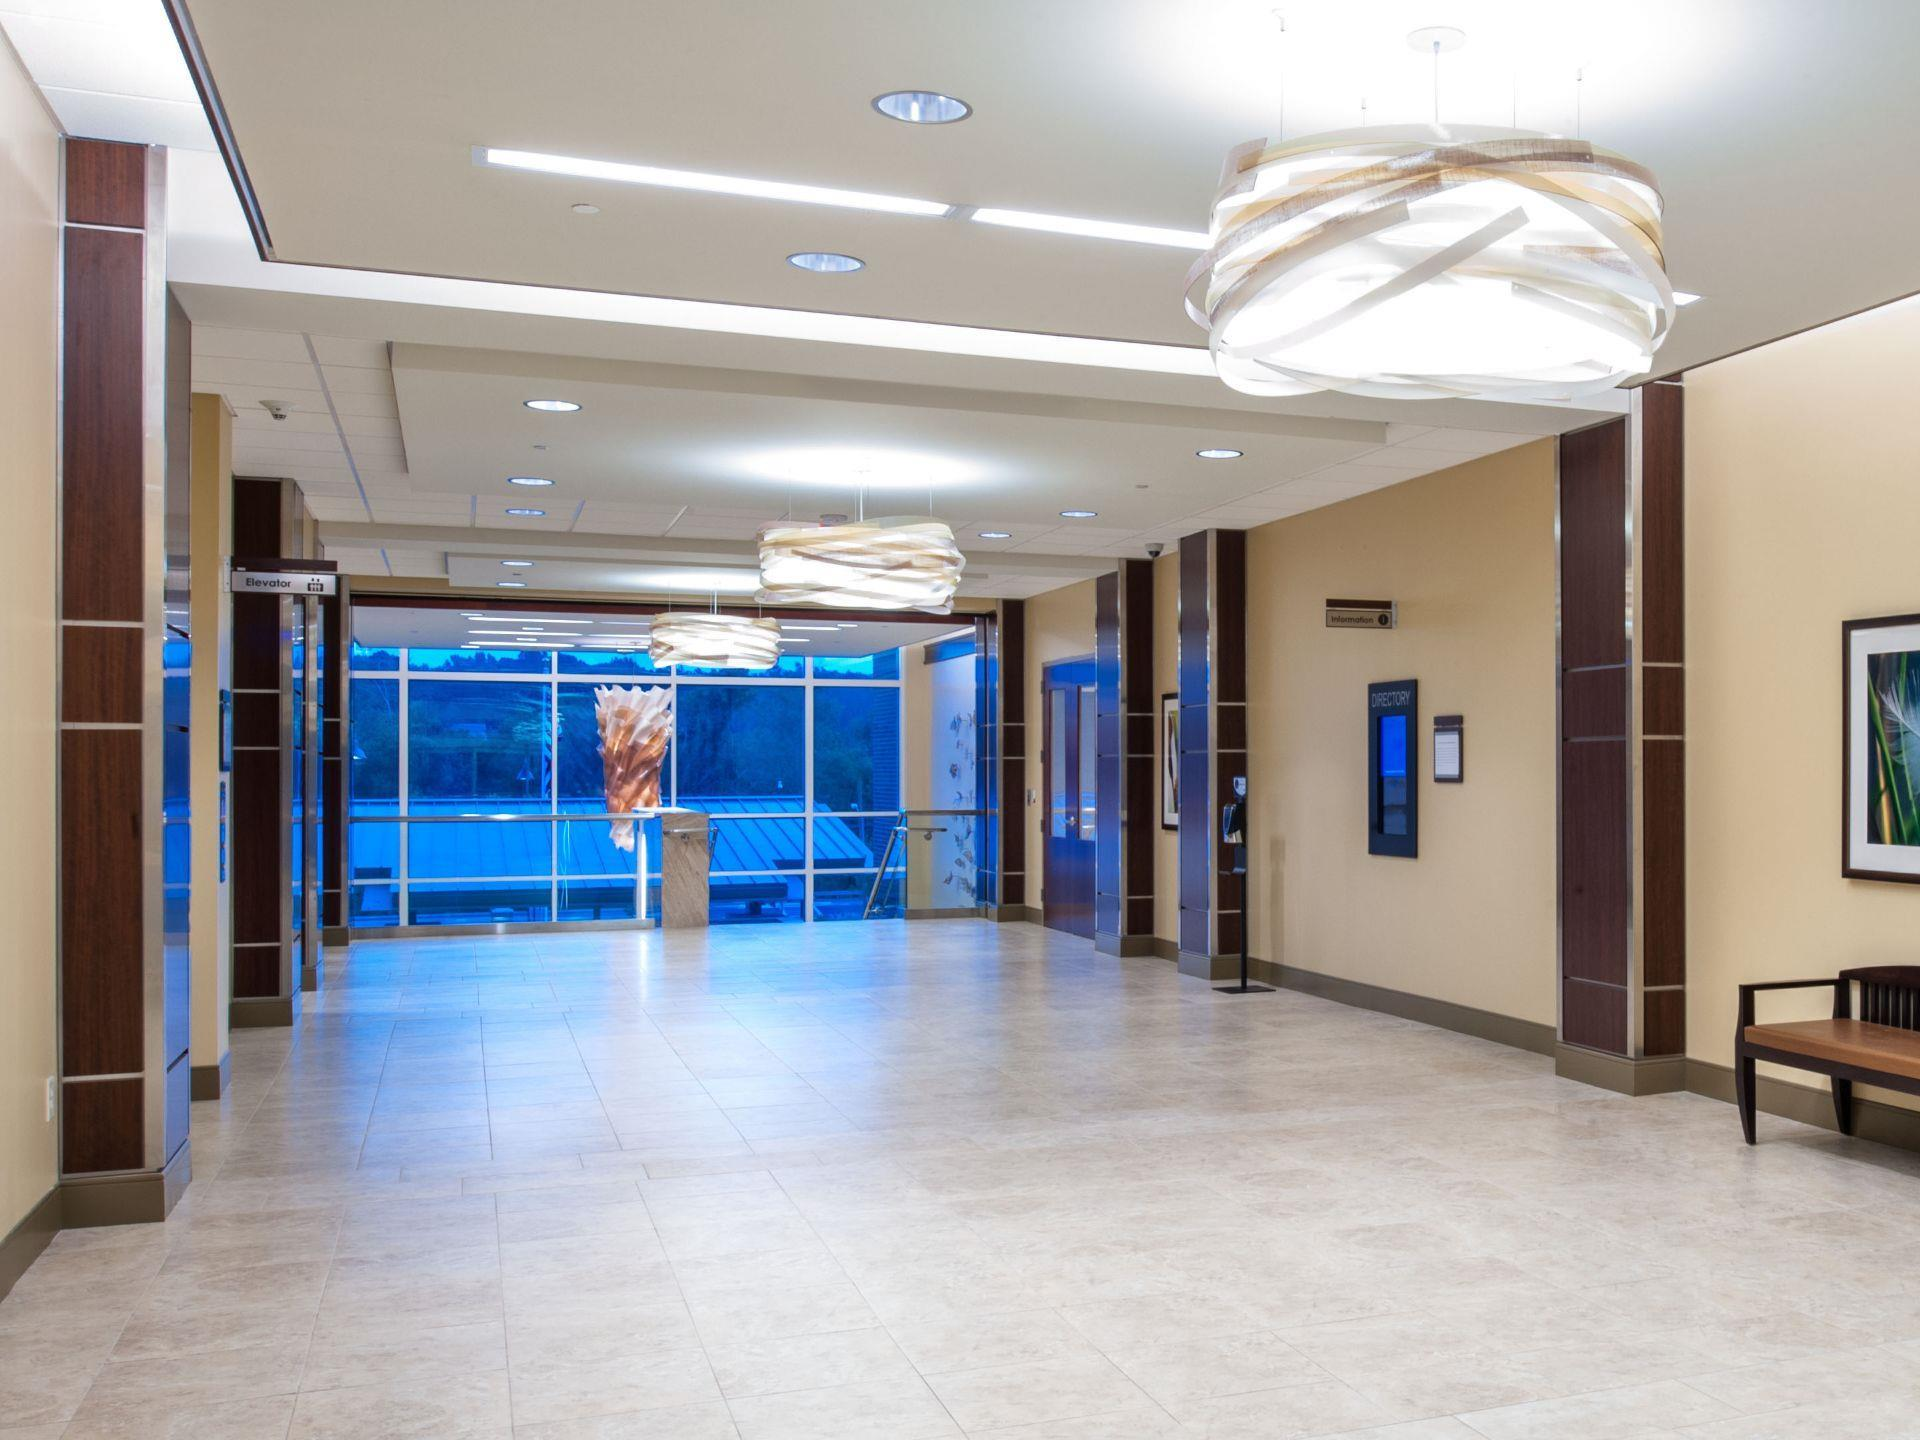 Large lobby open entrance with elevator